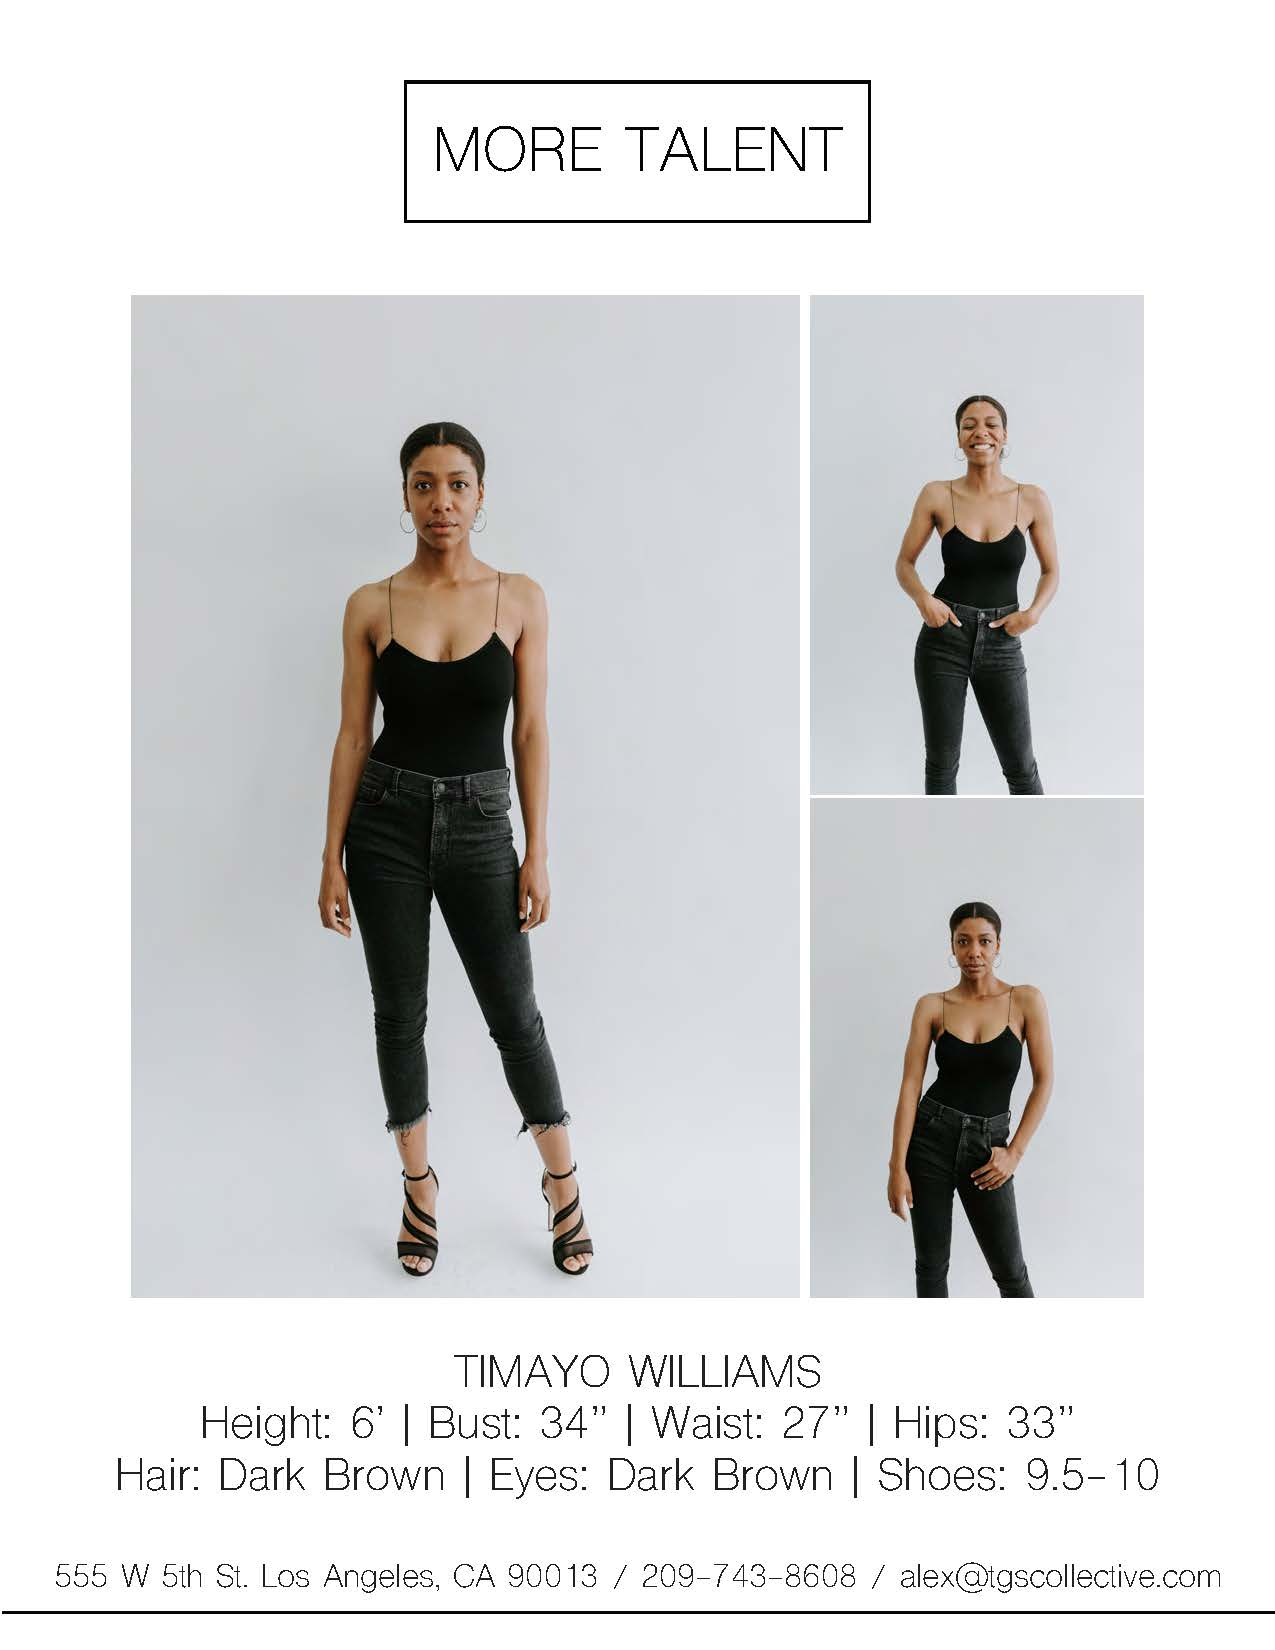 TIMAYO WILLIAMS MORE TALENT